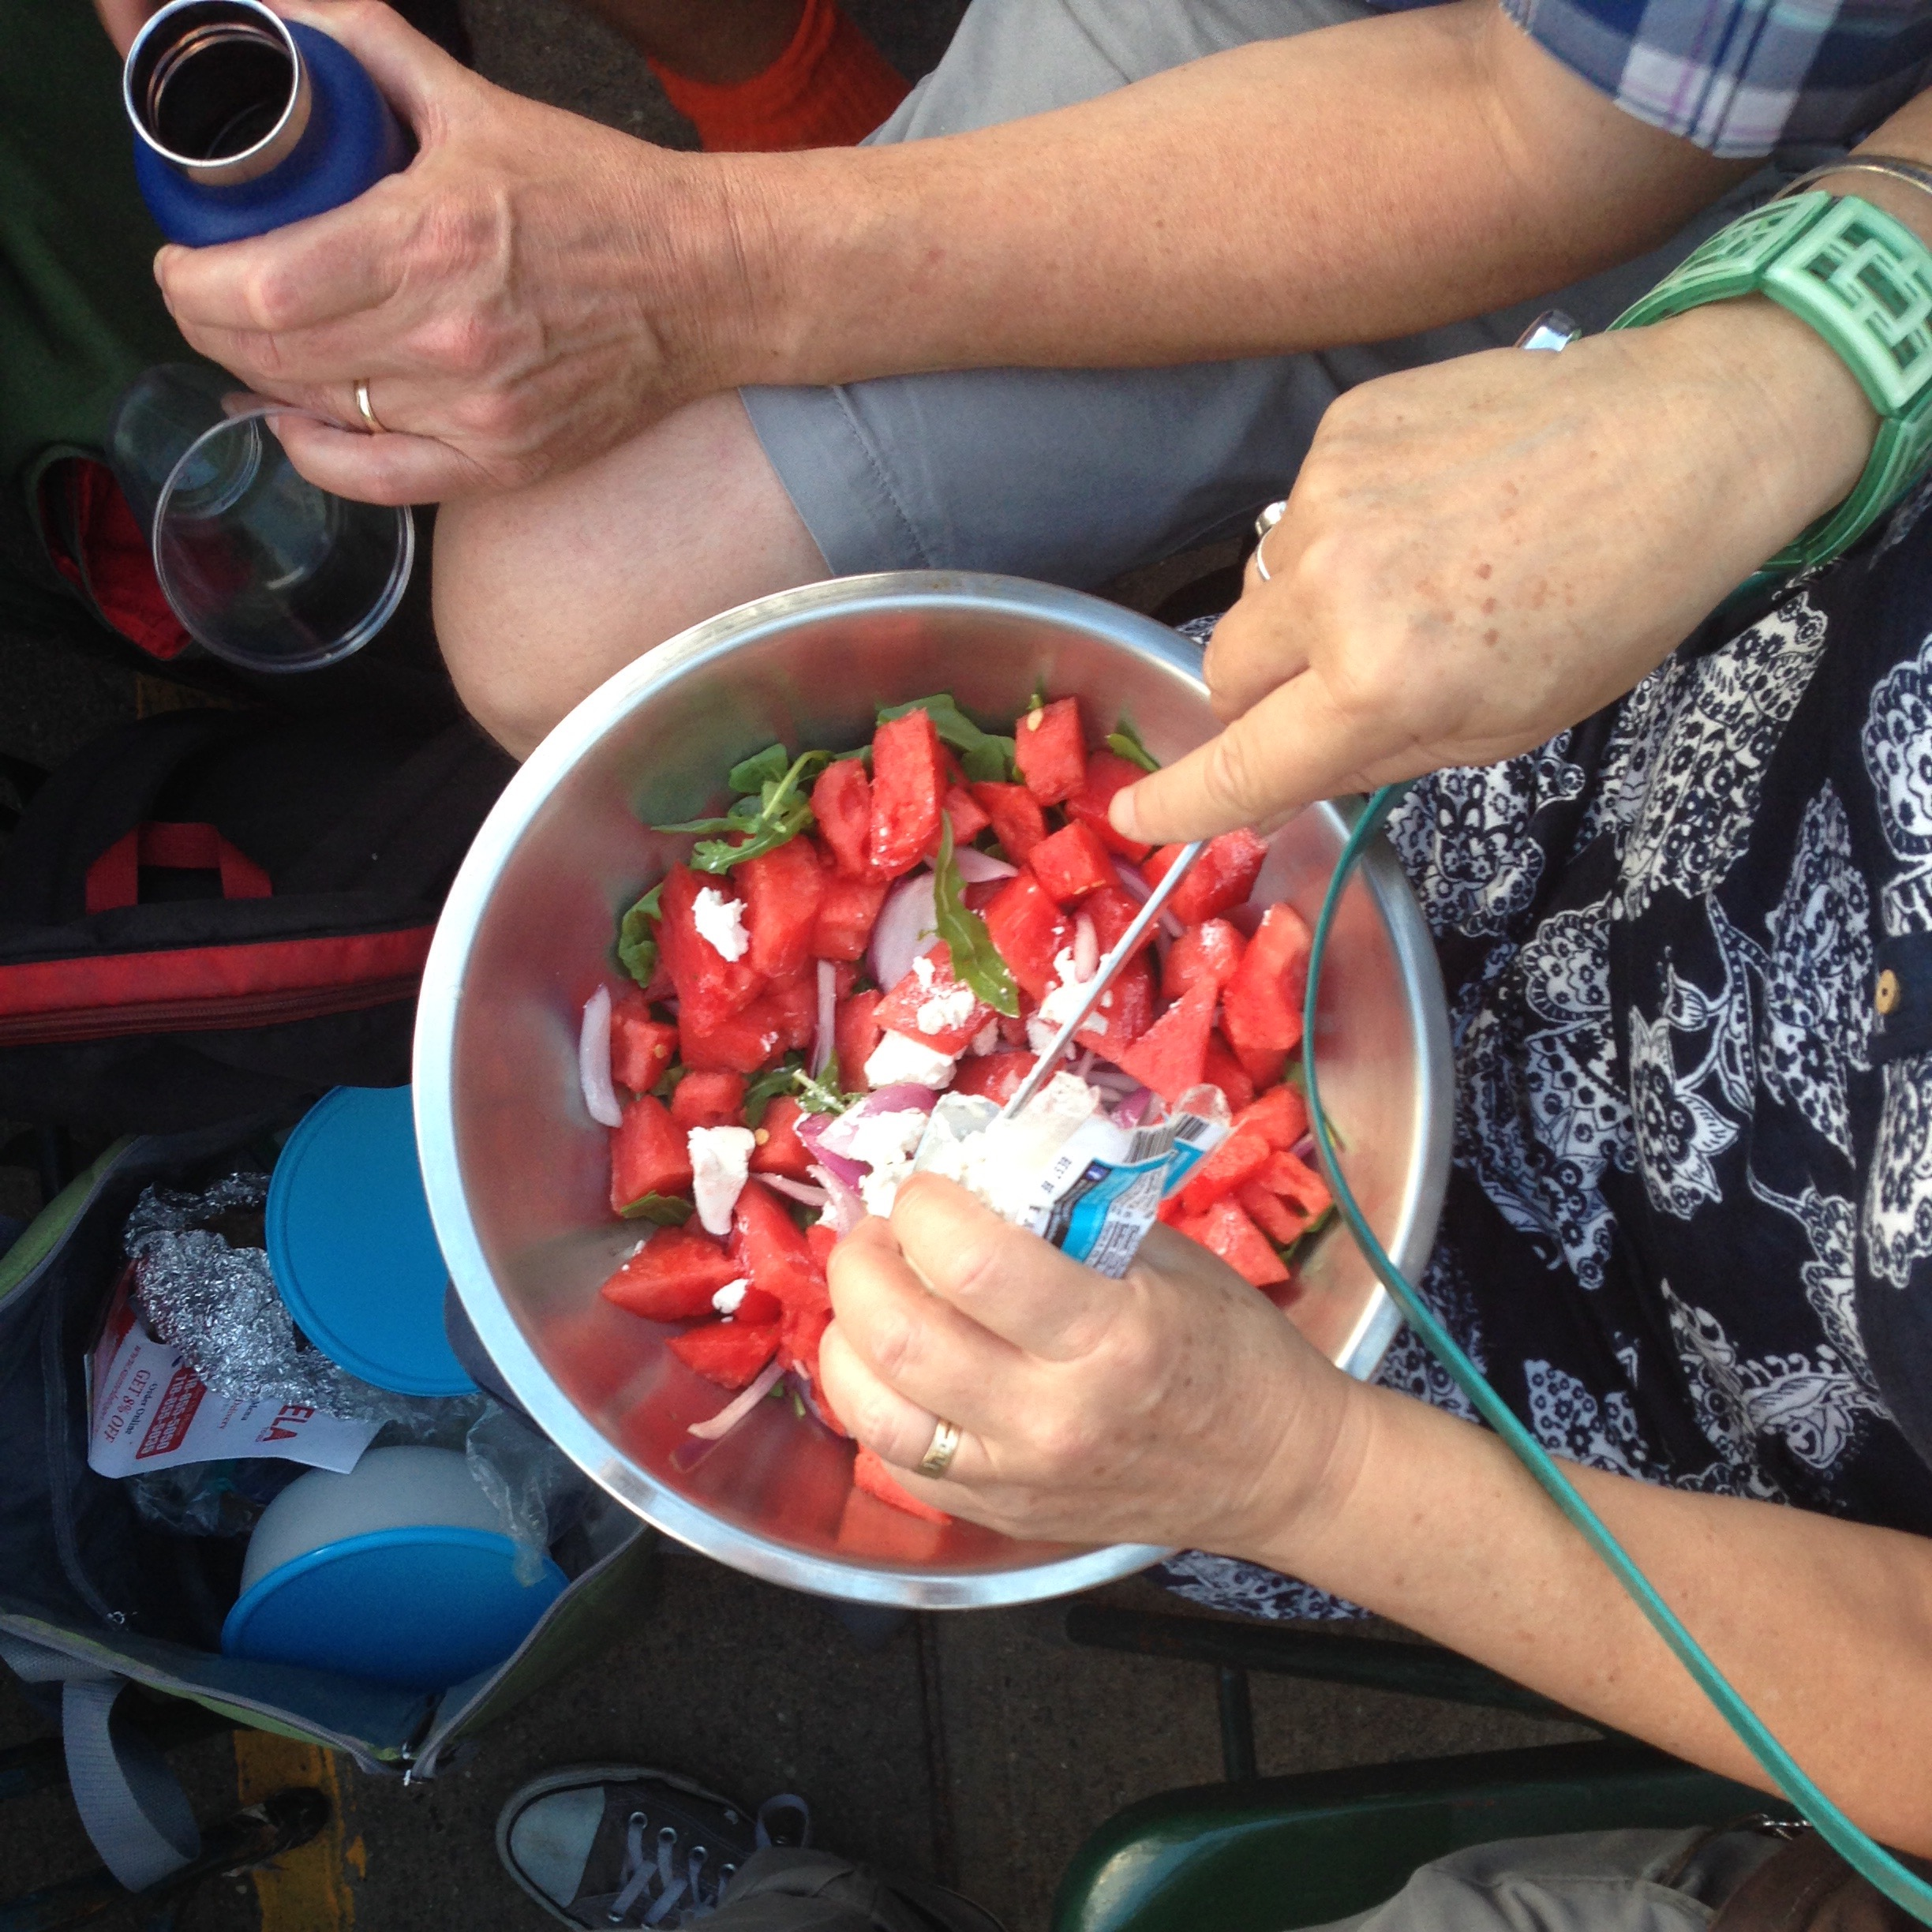 The magic act of the picnic salad